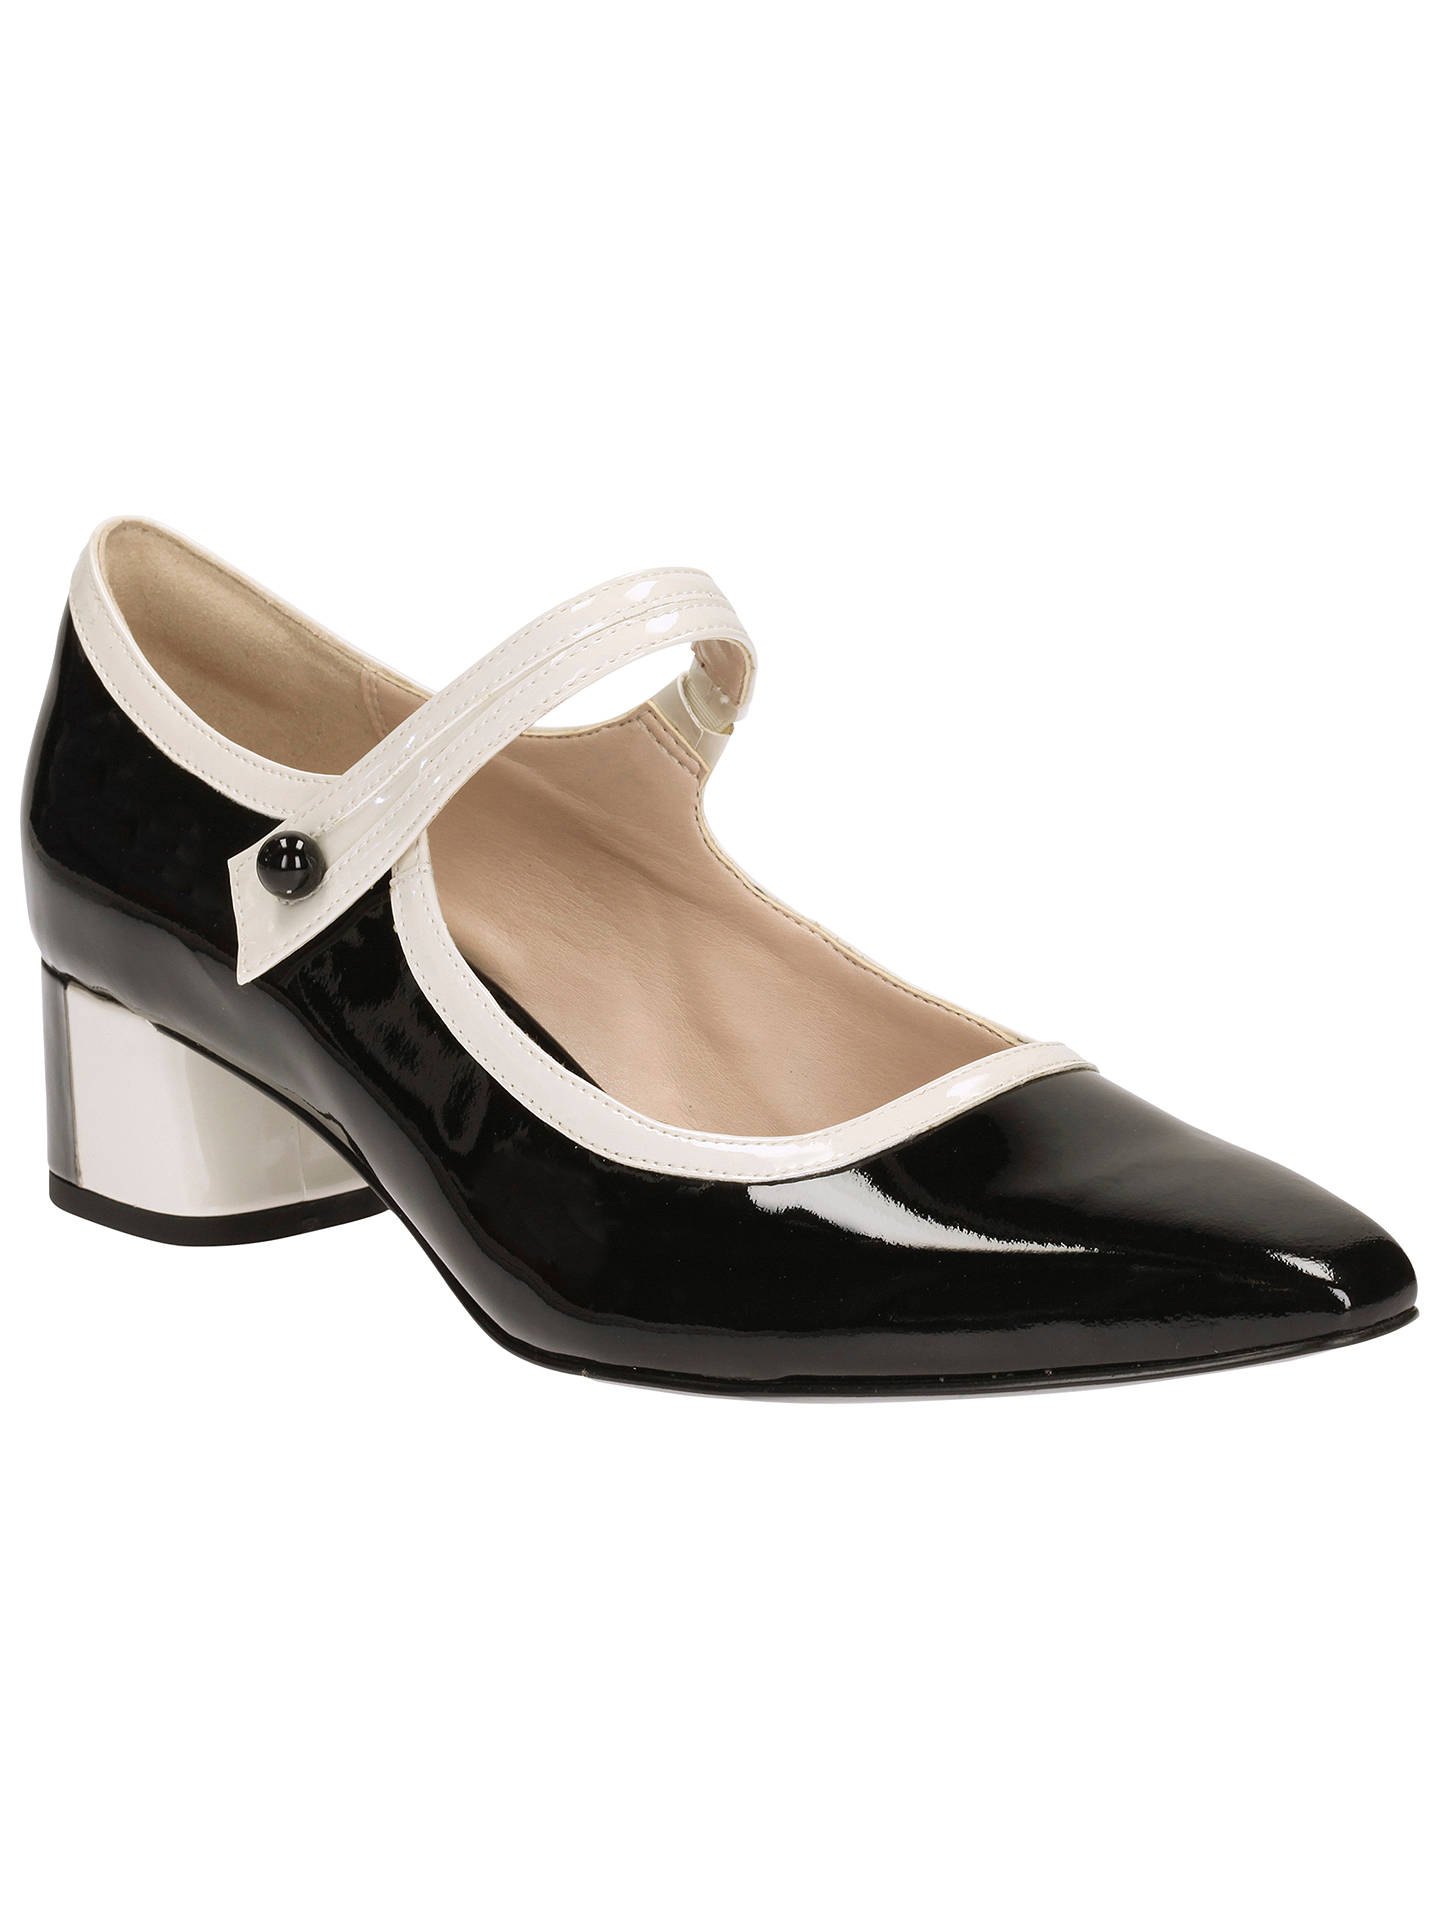 720879c63de Buy Clarks V&A Swixties Faye Block Heeled Mary Jane Court Shoes, Black  Comb, 4 ...